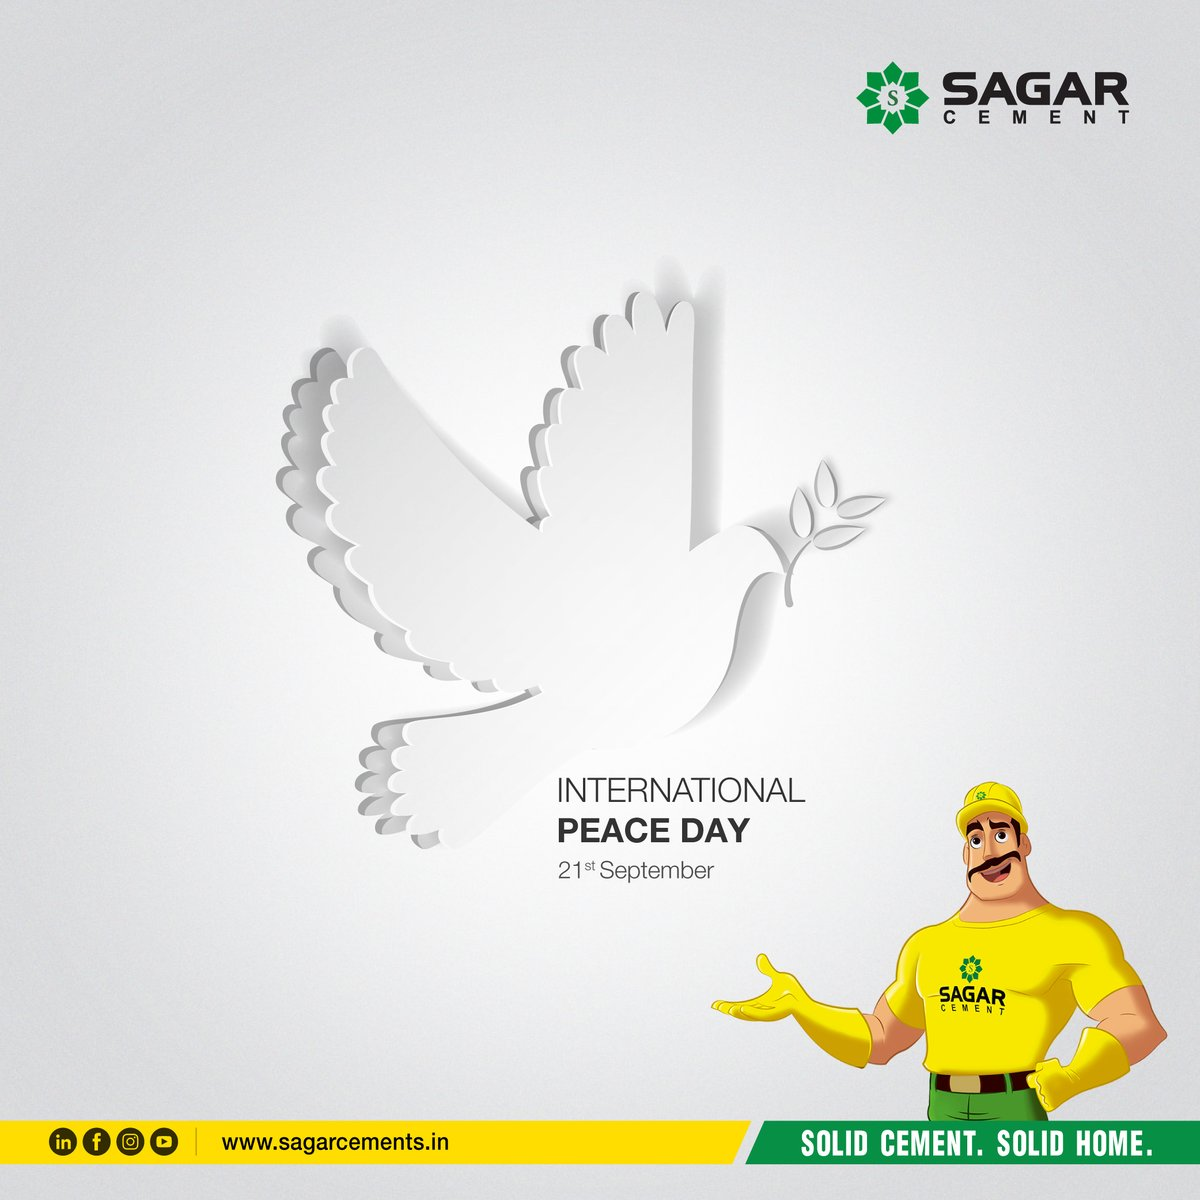 Peace cannot be kept by force, It can only be achieved by understanding. #InternationalPeaceDay2020   #PeaceDay #InternationalDayOfPeace #worldpeaceday #WorldPeaceDay2020 #PeaceDay2020 #peaceful #peaceofmind #PeaceAndLove #Peace #PositiveVibes https://t.co/iJeYzGScd9